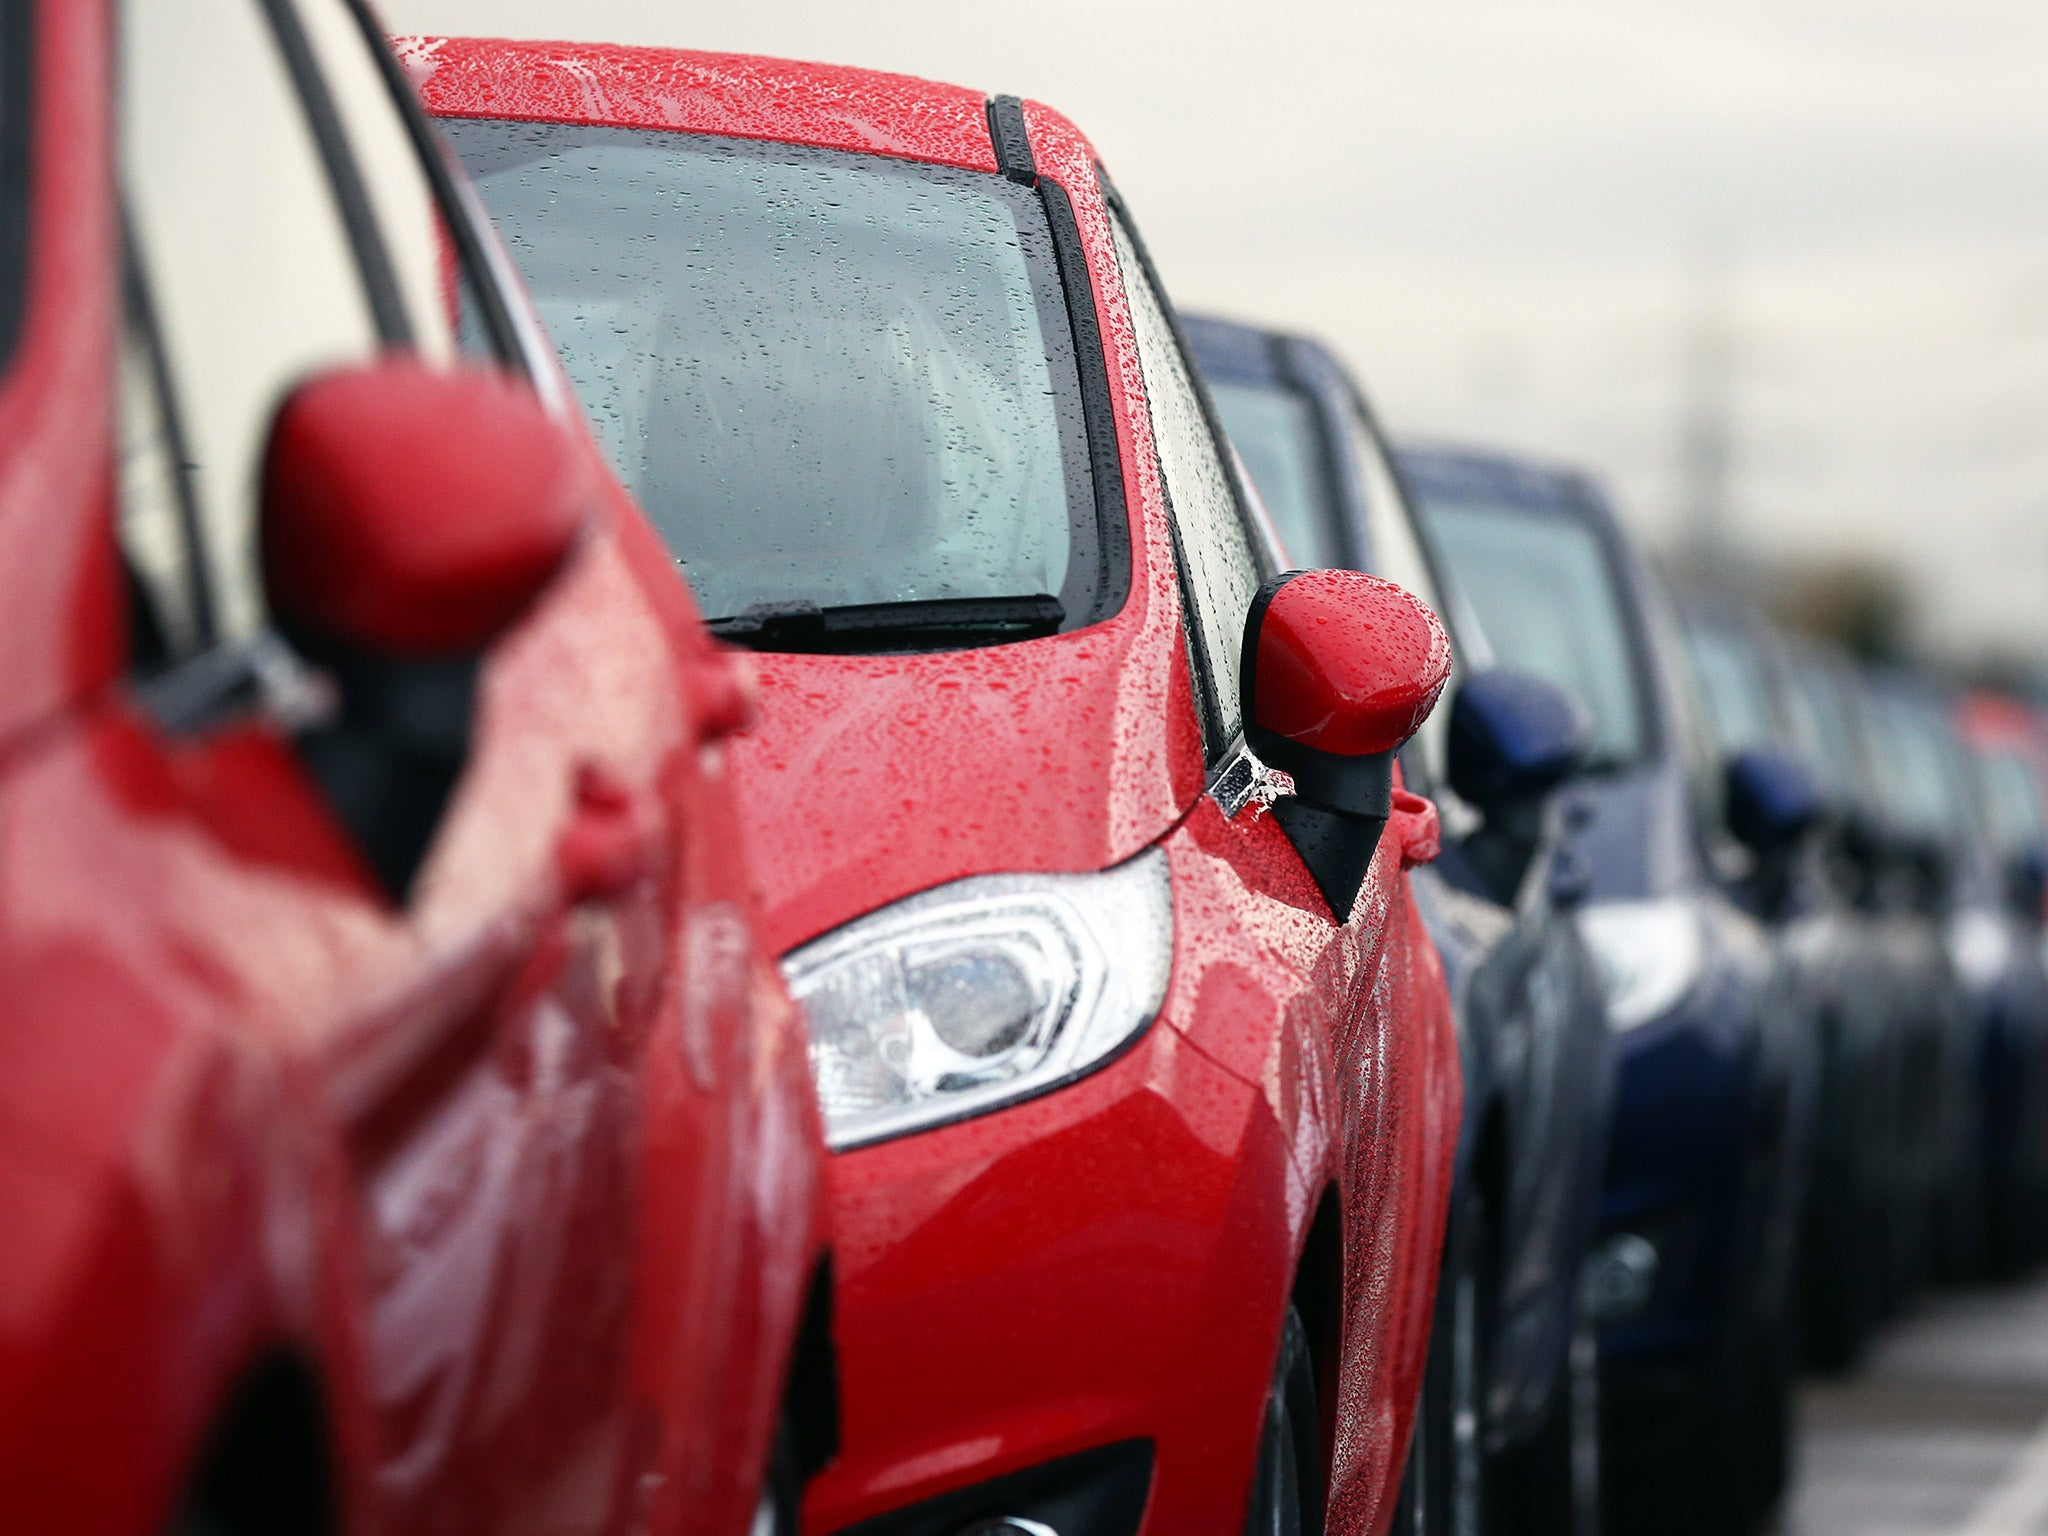 Car prices set to rise in 2017 as Brexit uncertainty kicks in, warns industry body